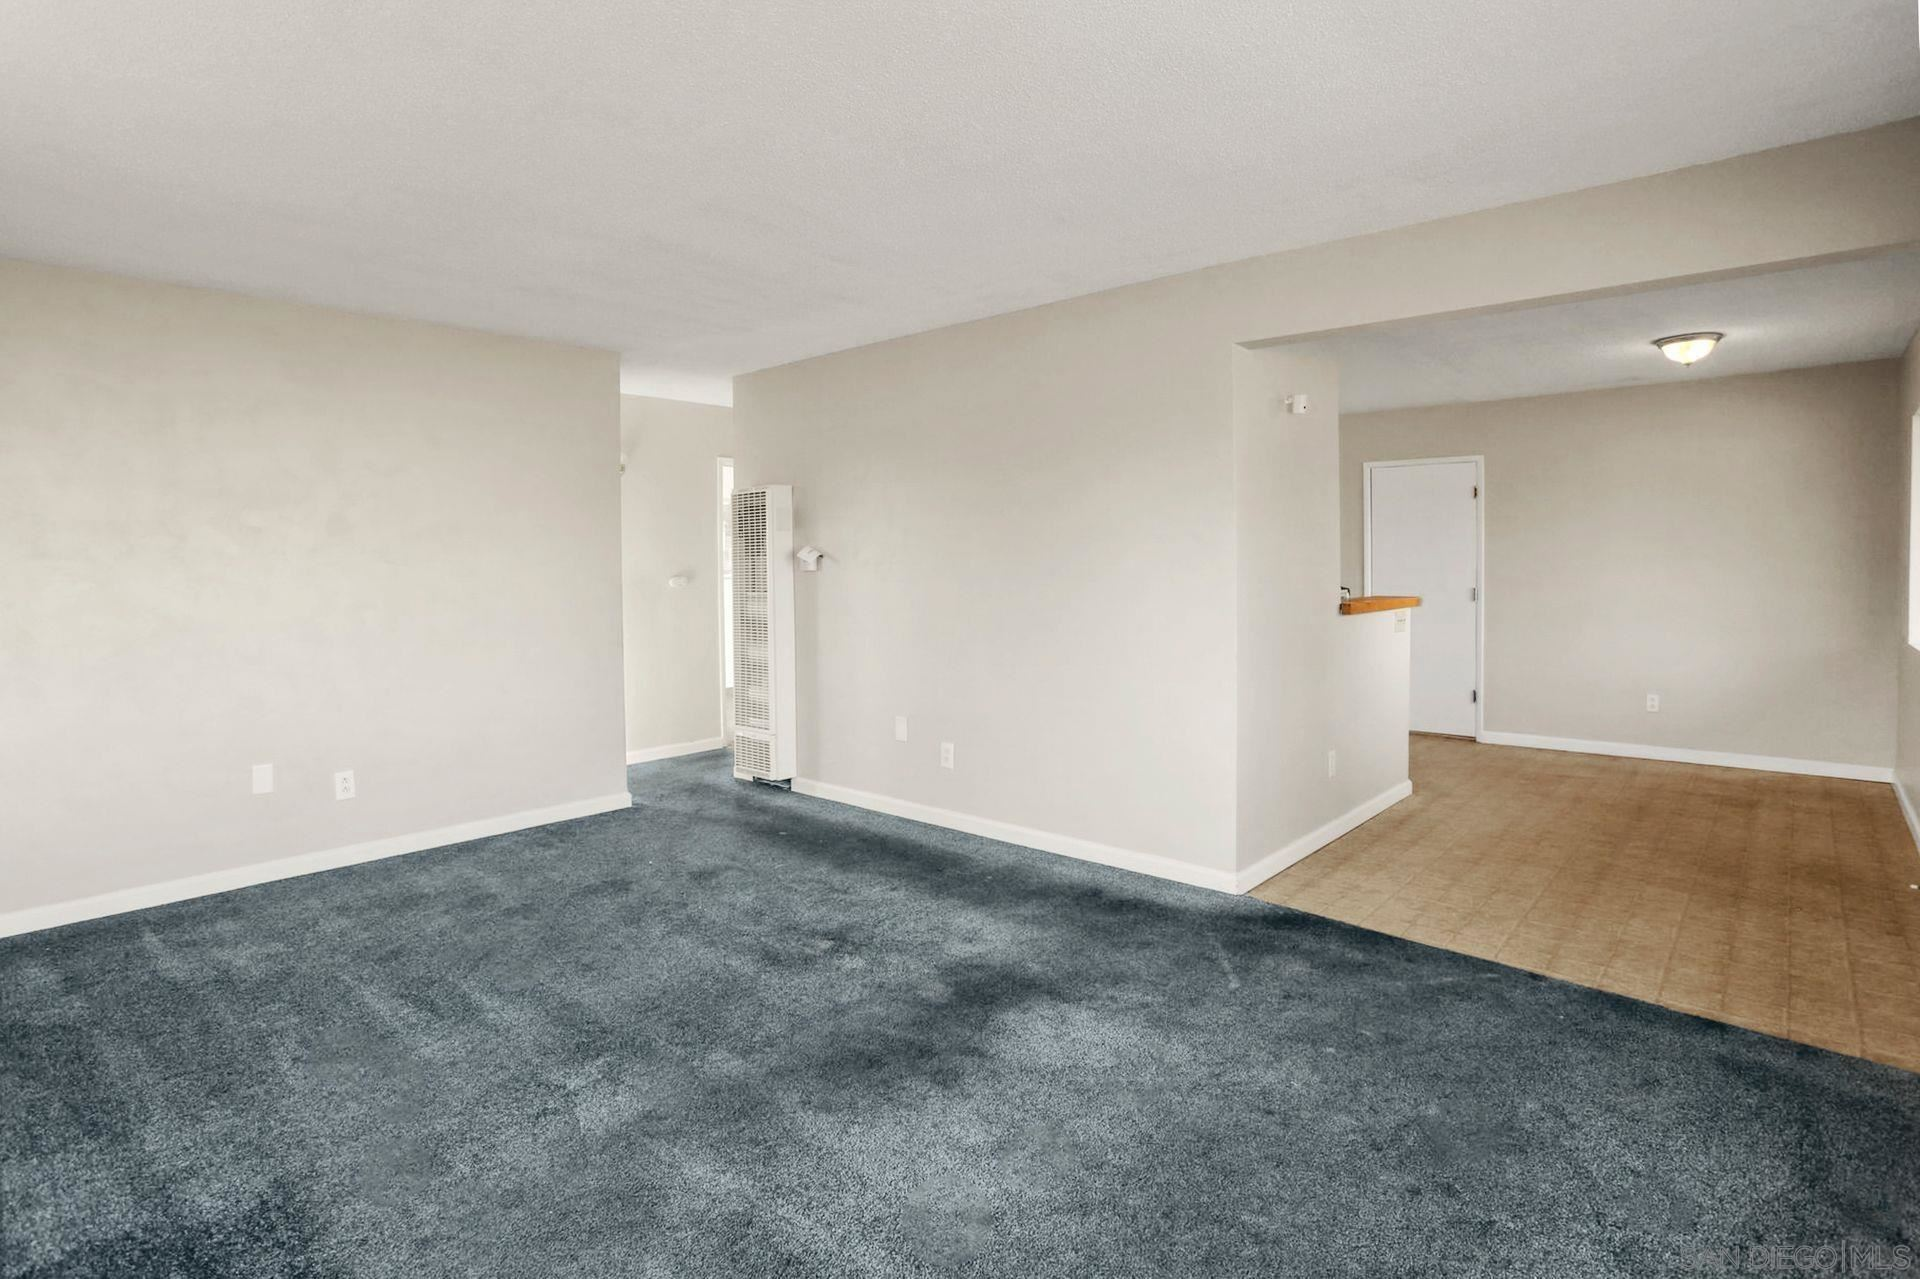 Photo of 907 7Th St, Imperial Beach, CA 91932 (MLS # 210023095)